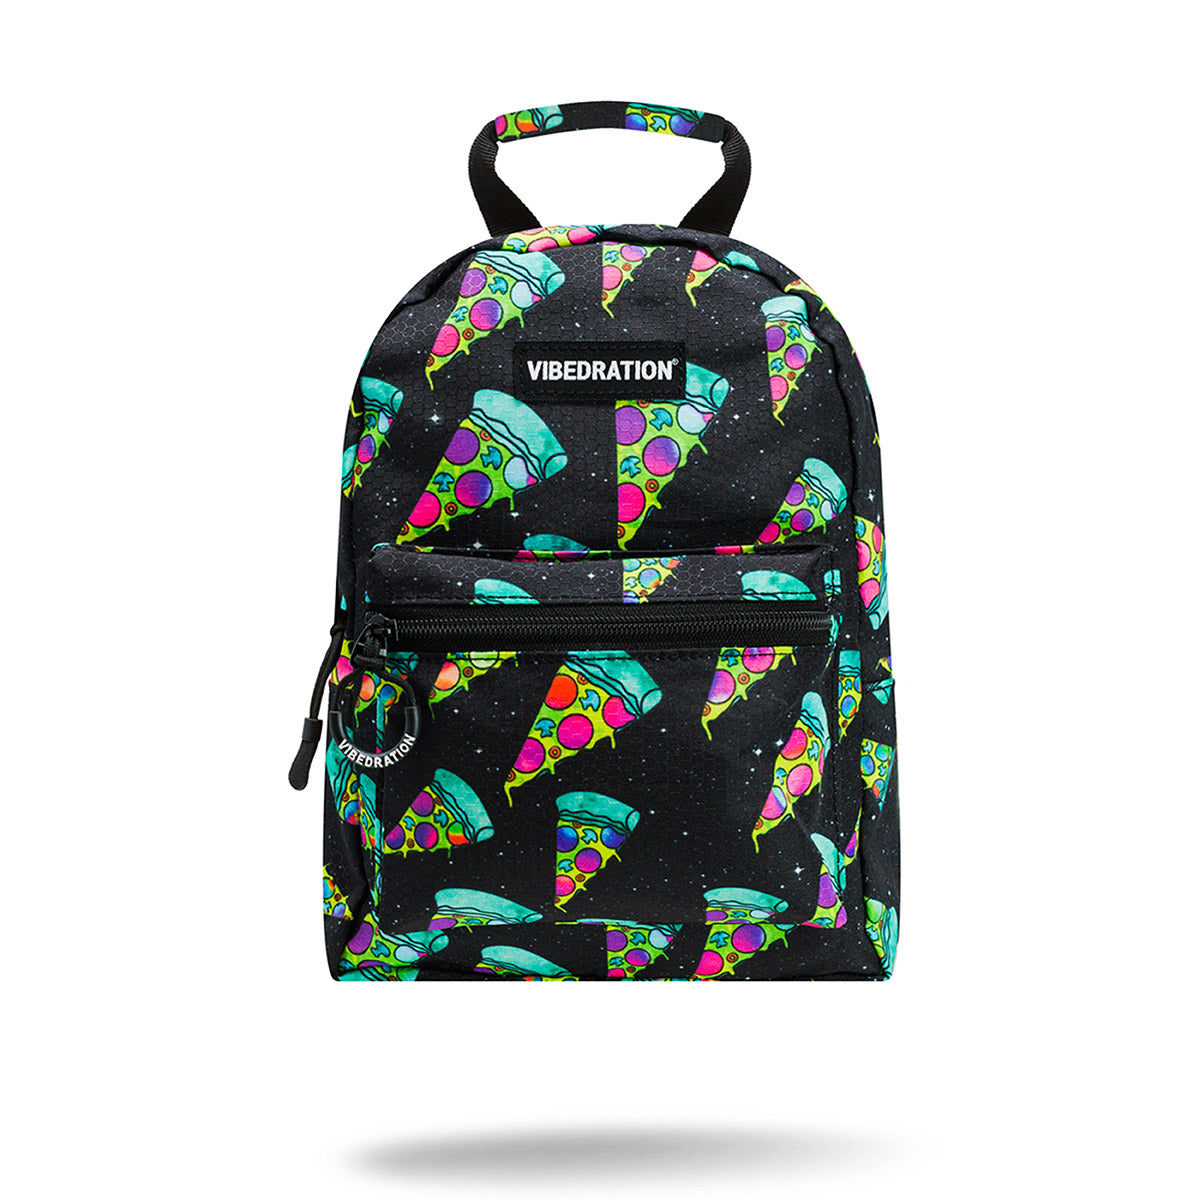 Cosmic Pizza Mini Backpack for Music Festivals